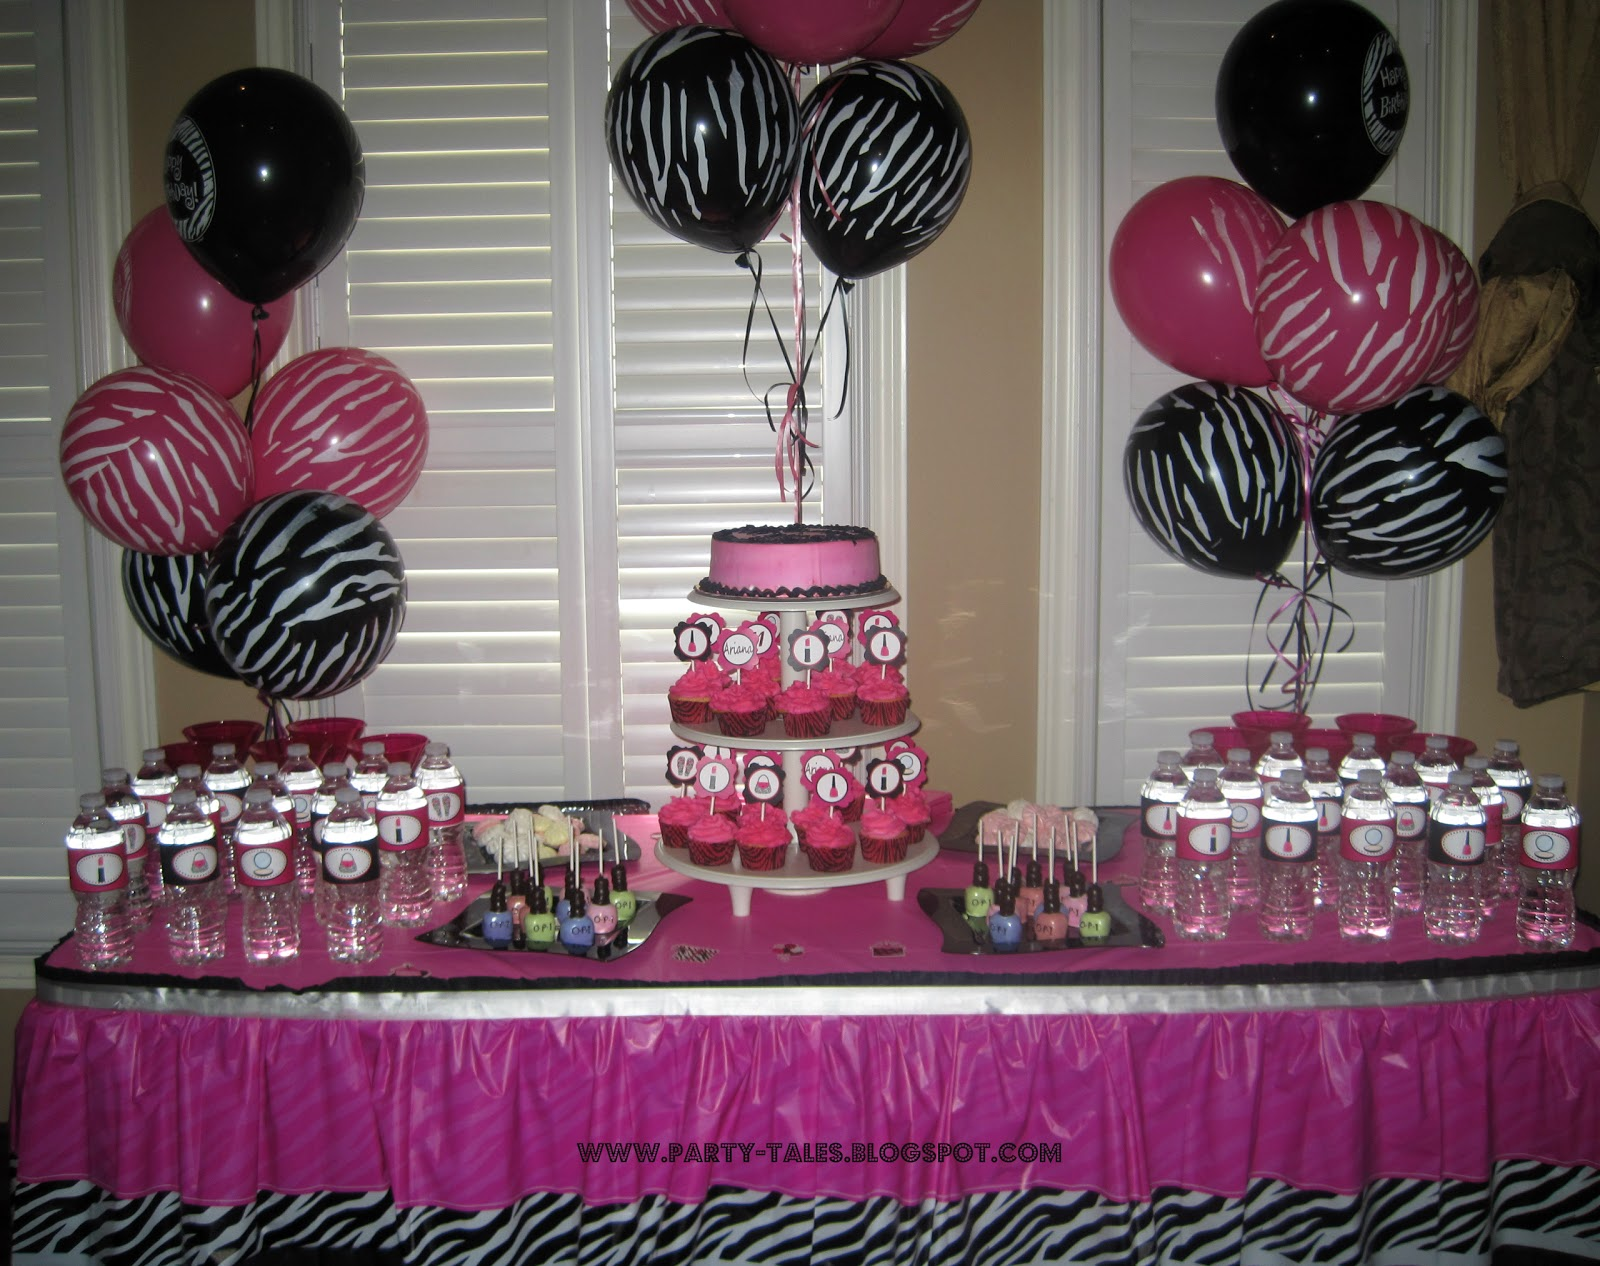 Party tales birthday party zebra print and hot pink for Animal print party decoration ideas